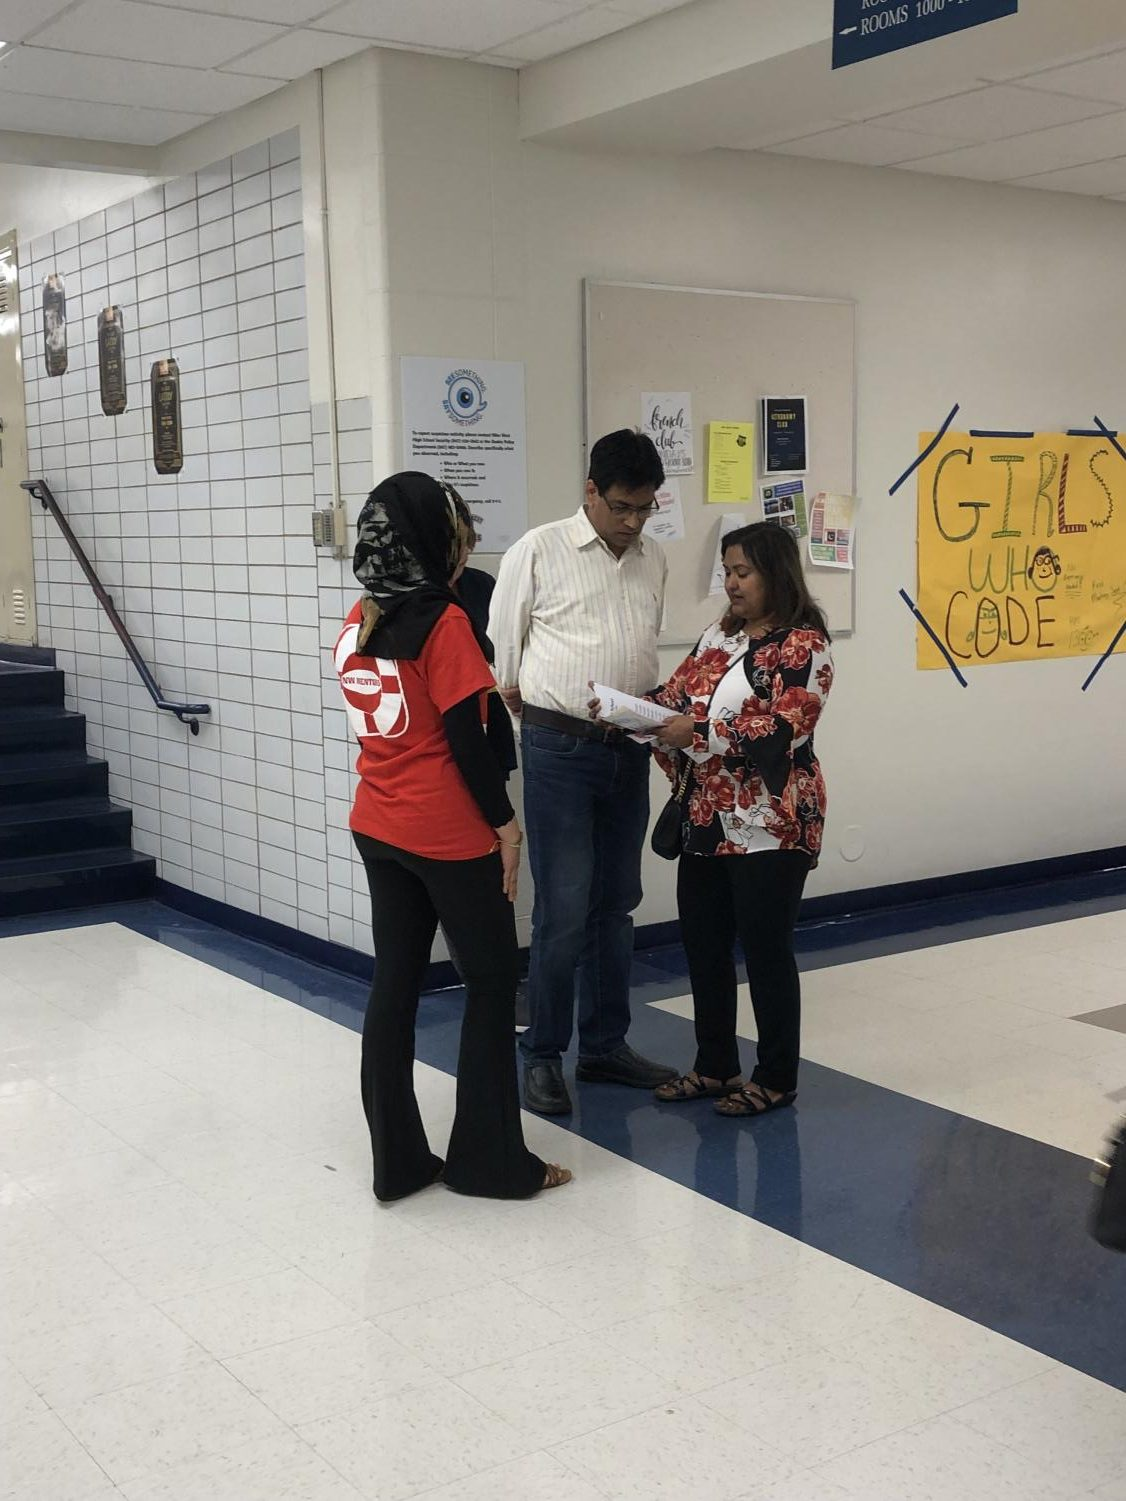 An Open House volunteer guides parents to their next class.